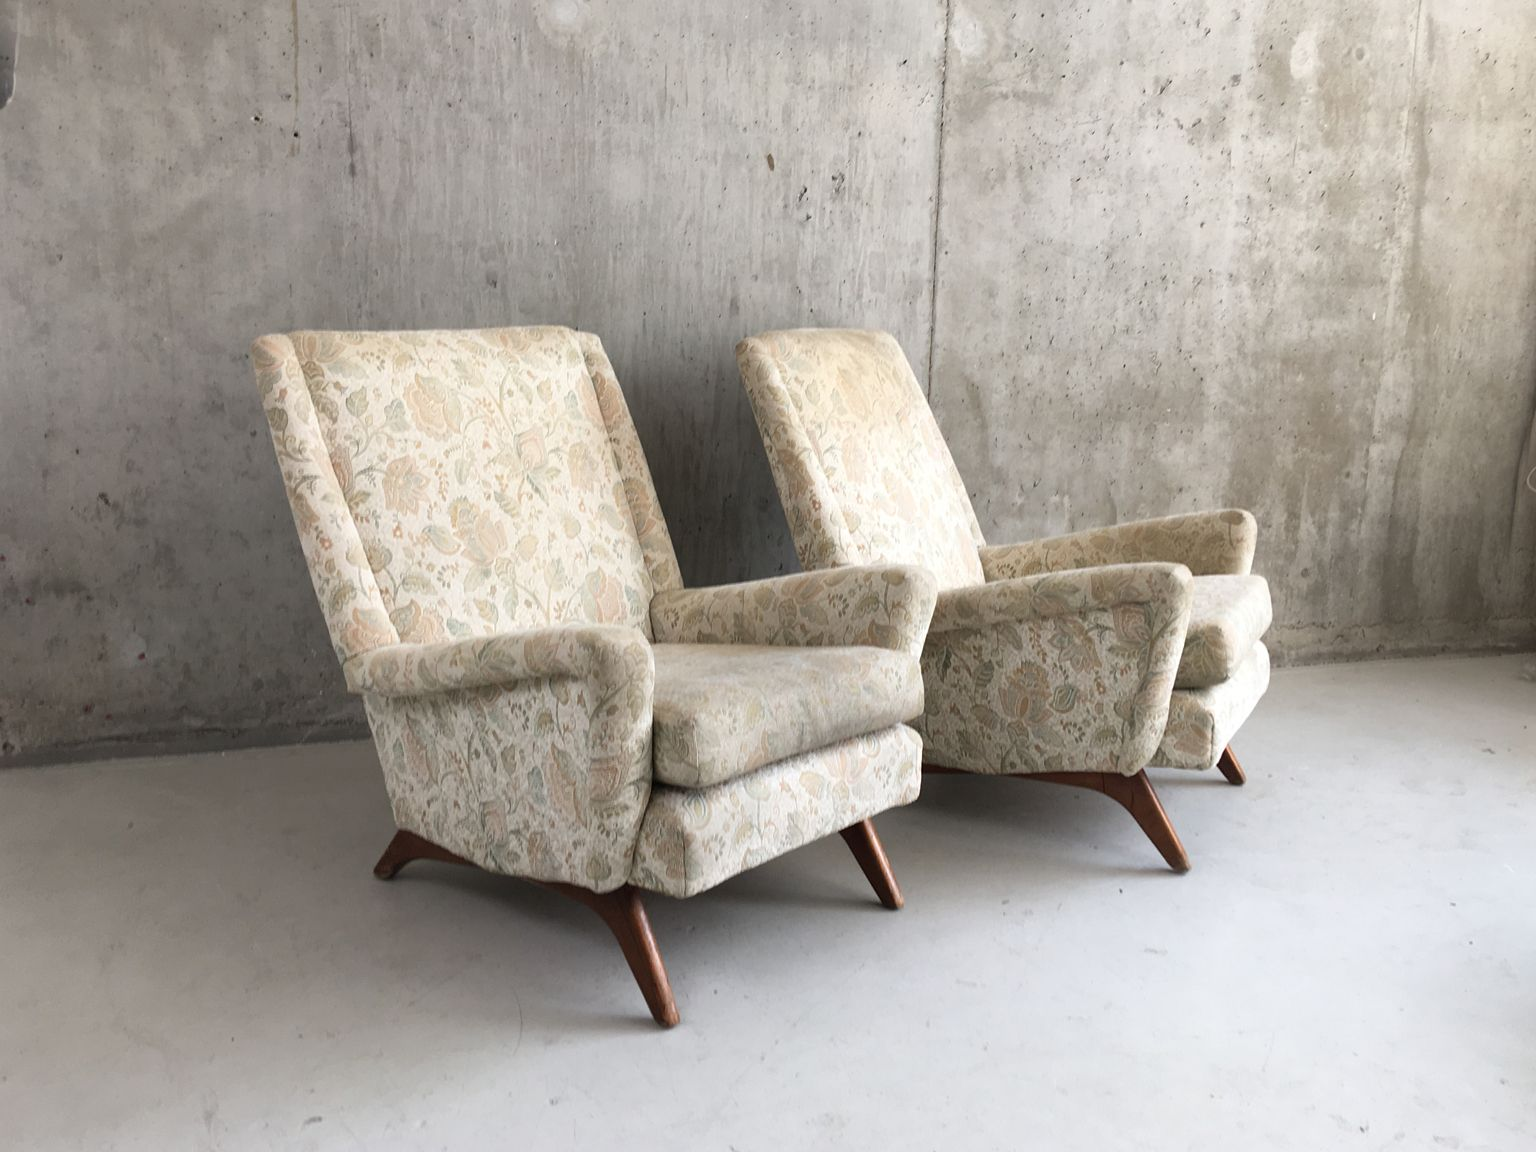 Belgian armchairs 1970s set of 2 for sale at pamono for 2 armchairs for sale